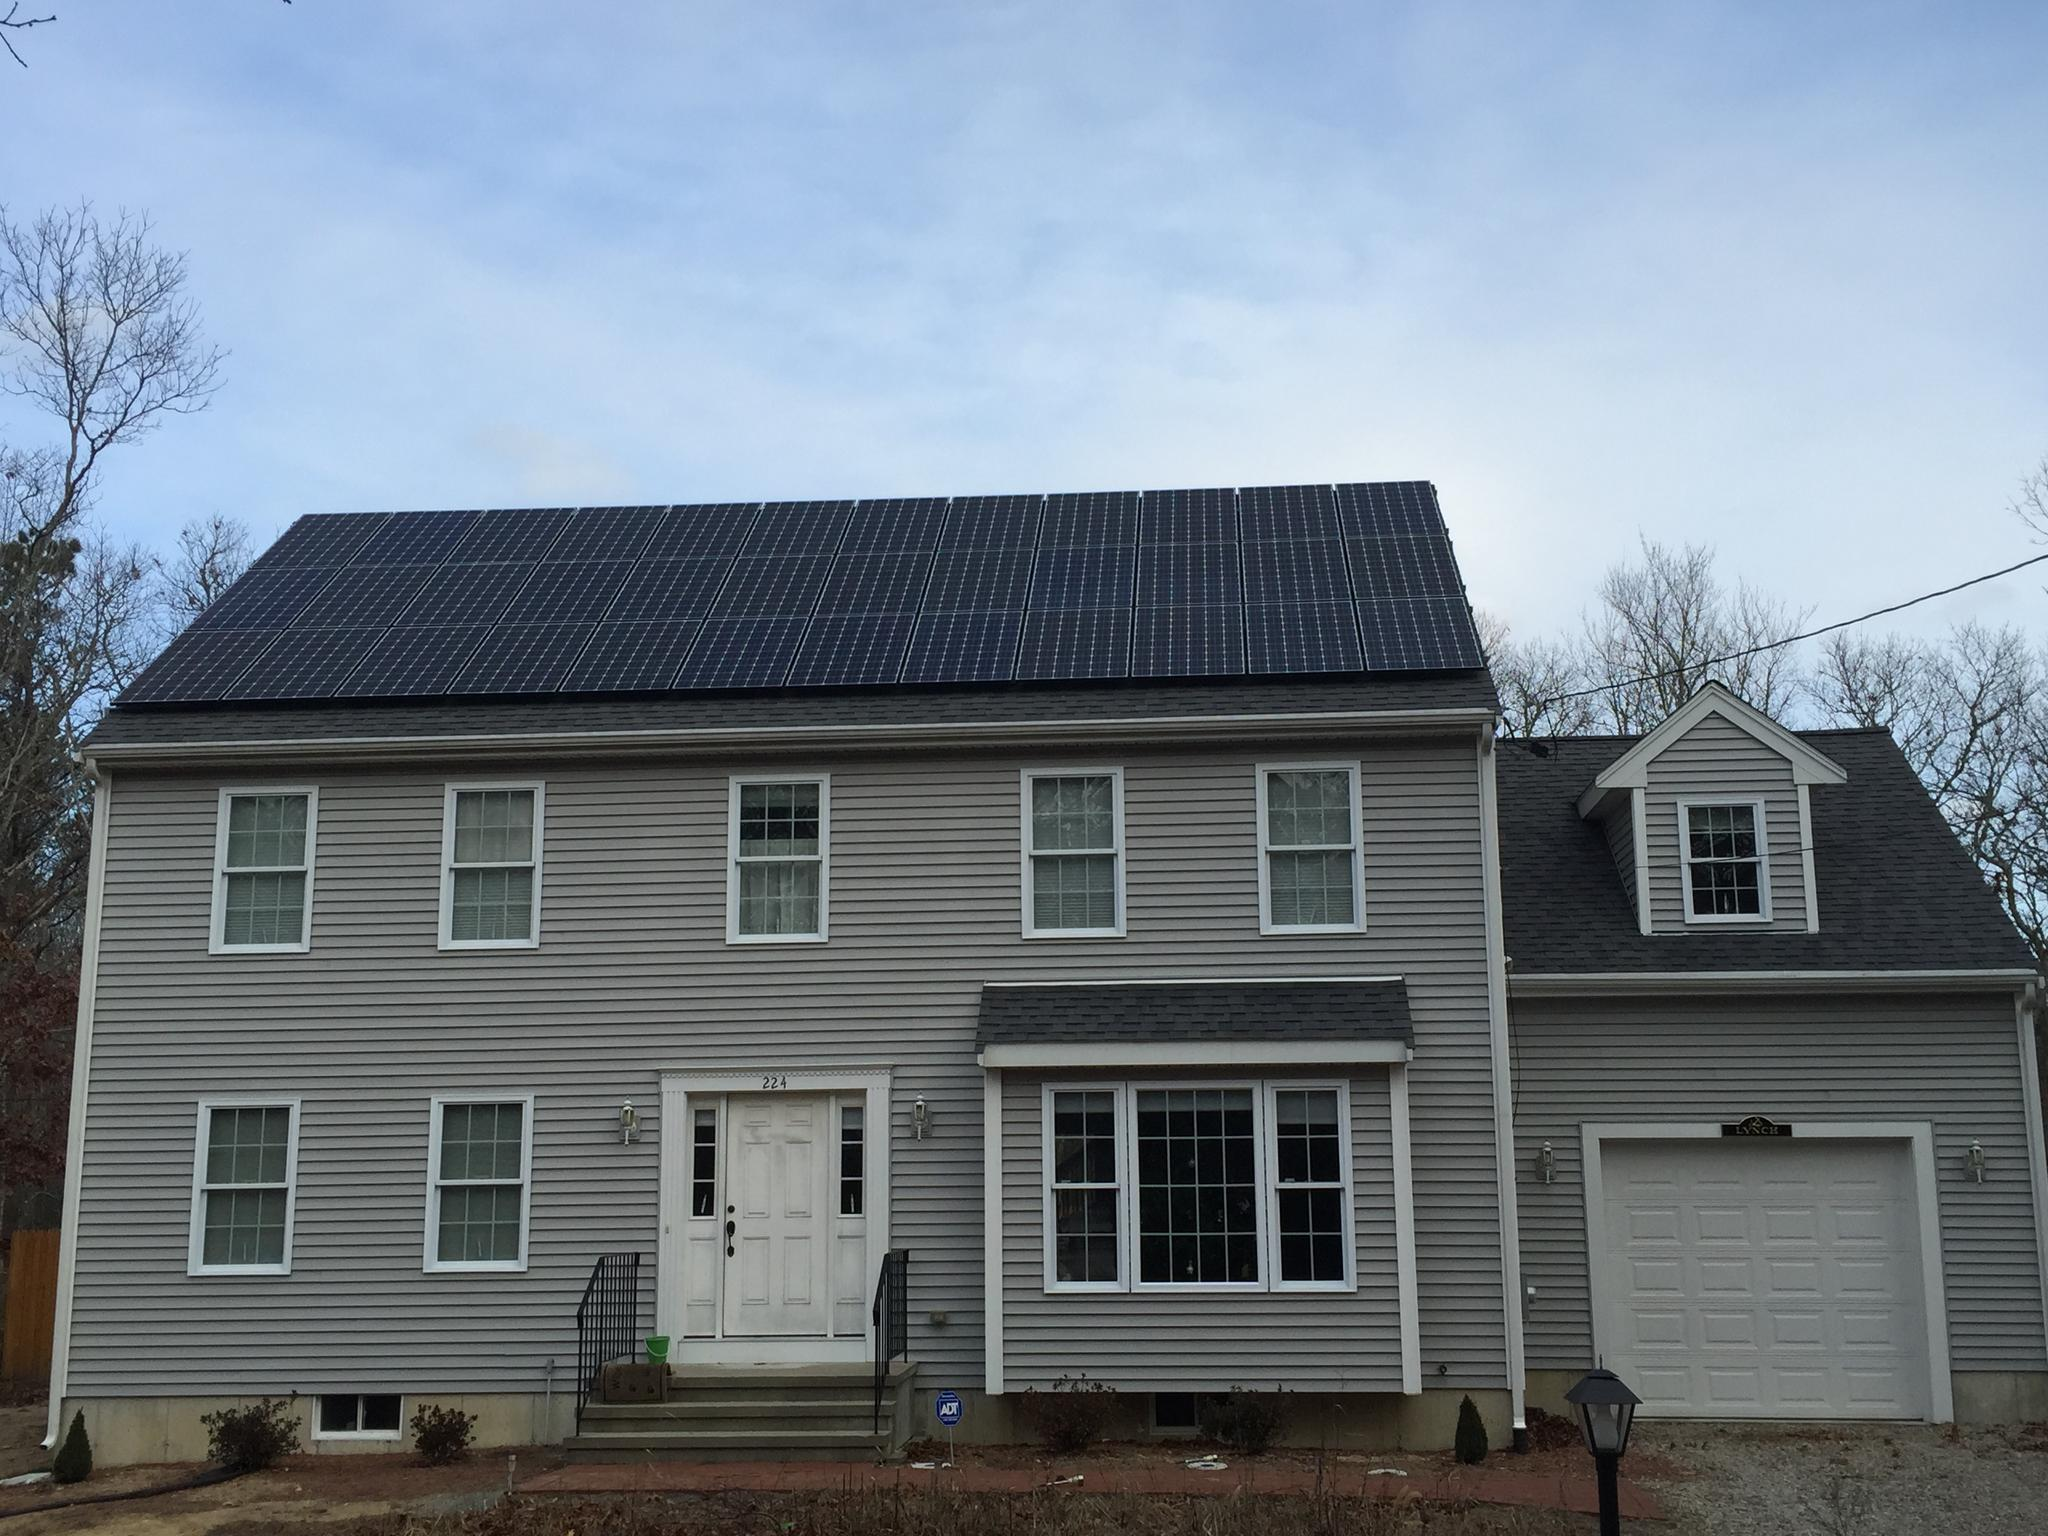 Solar Rising LLC - Profile & Reviews 2018 | EnergySage